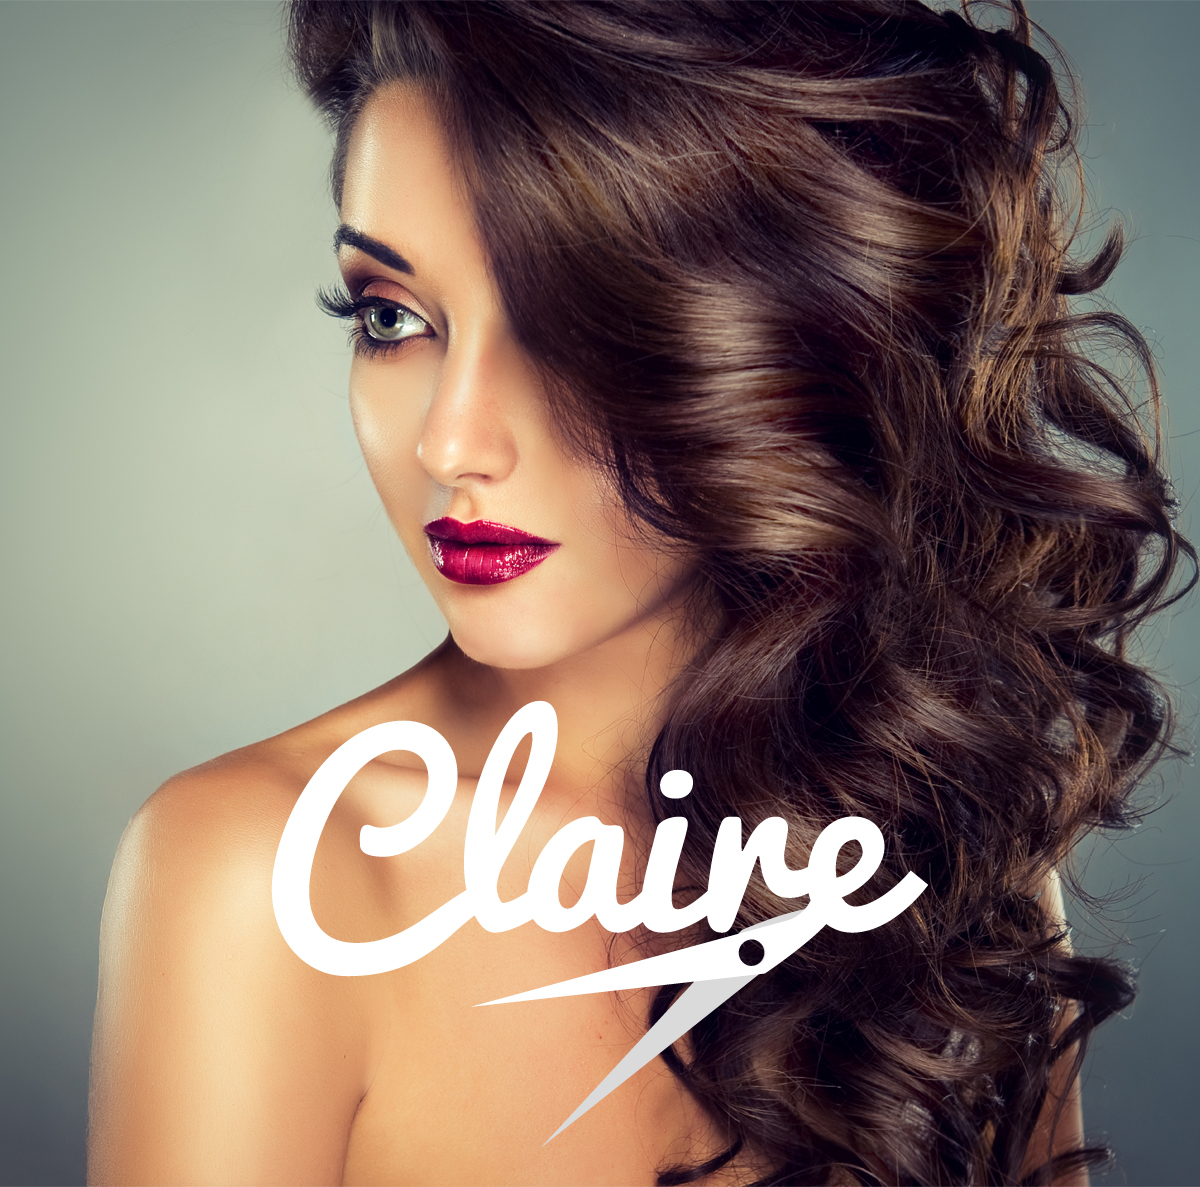 Claire Hairdressers logo design & brand creation